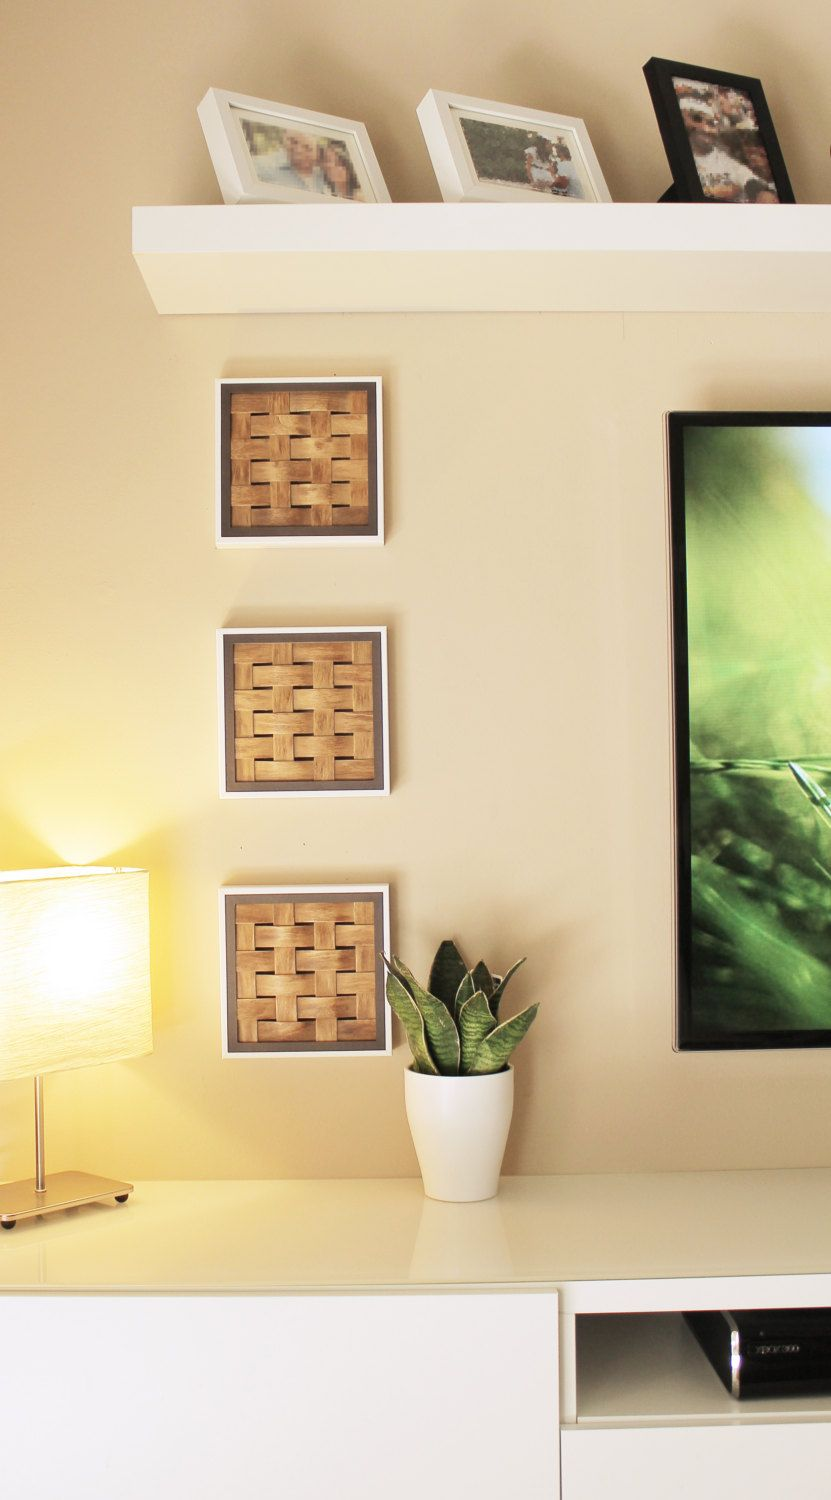 3 Set of White Matted Frames, Light Stained Woven Basswood with a ...